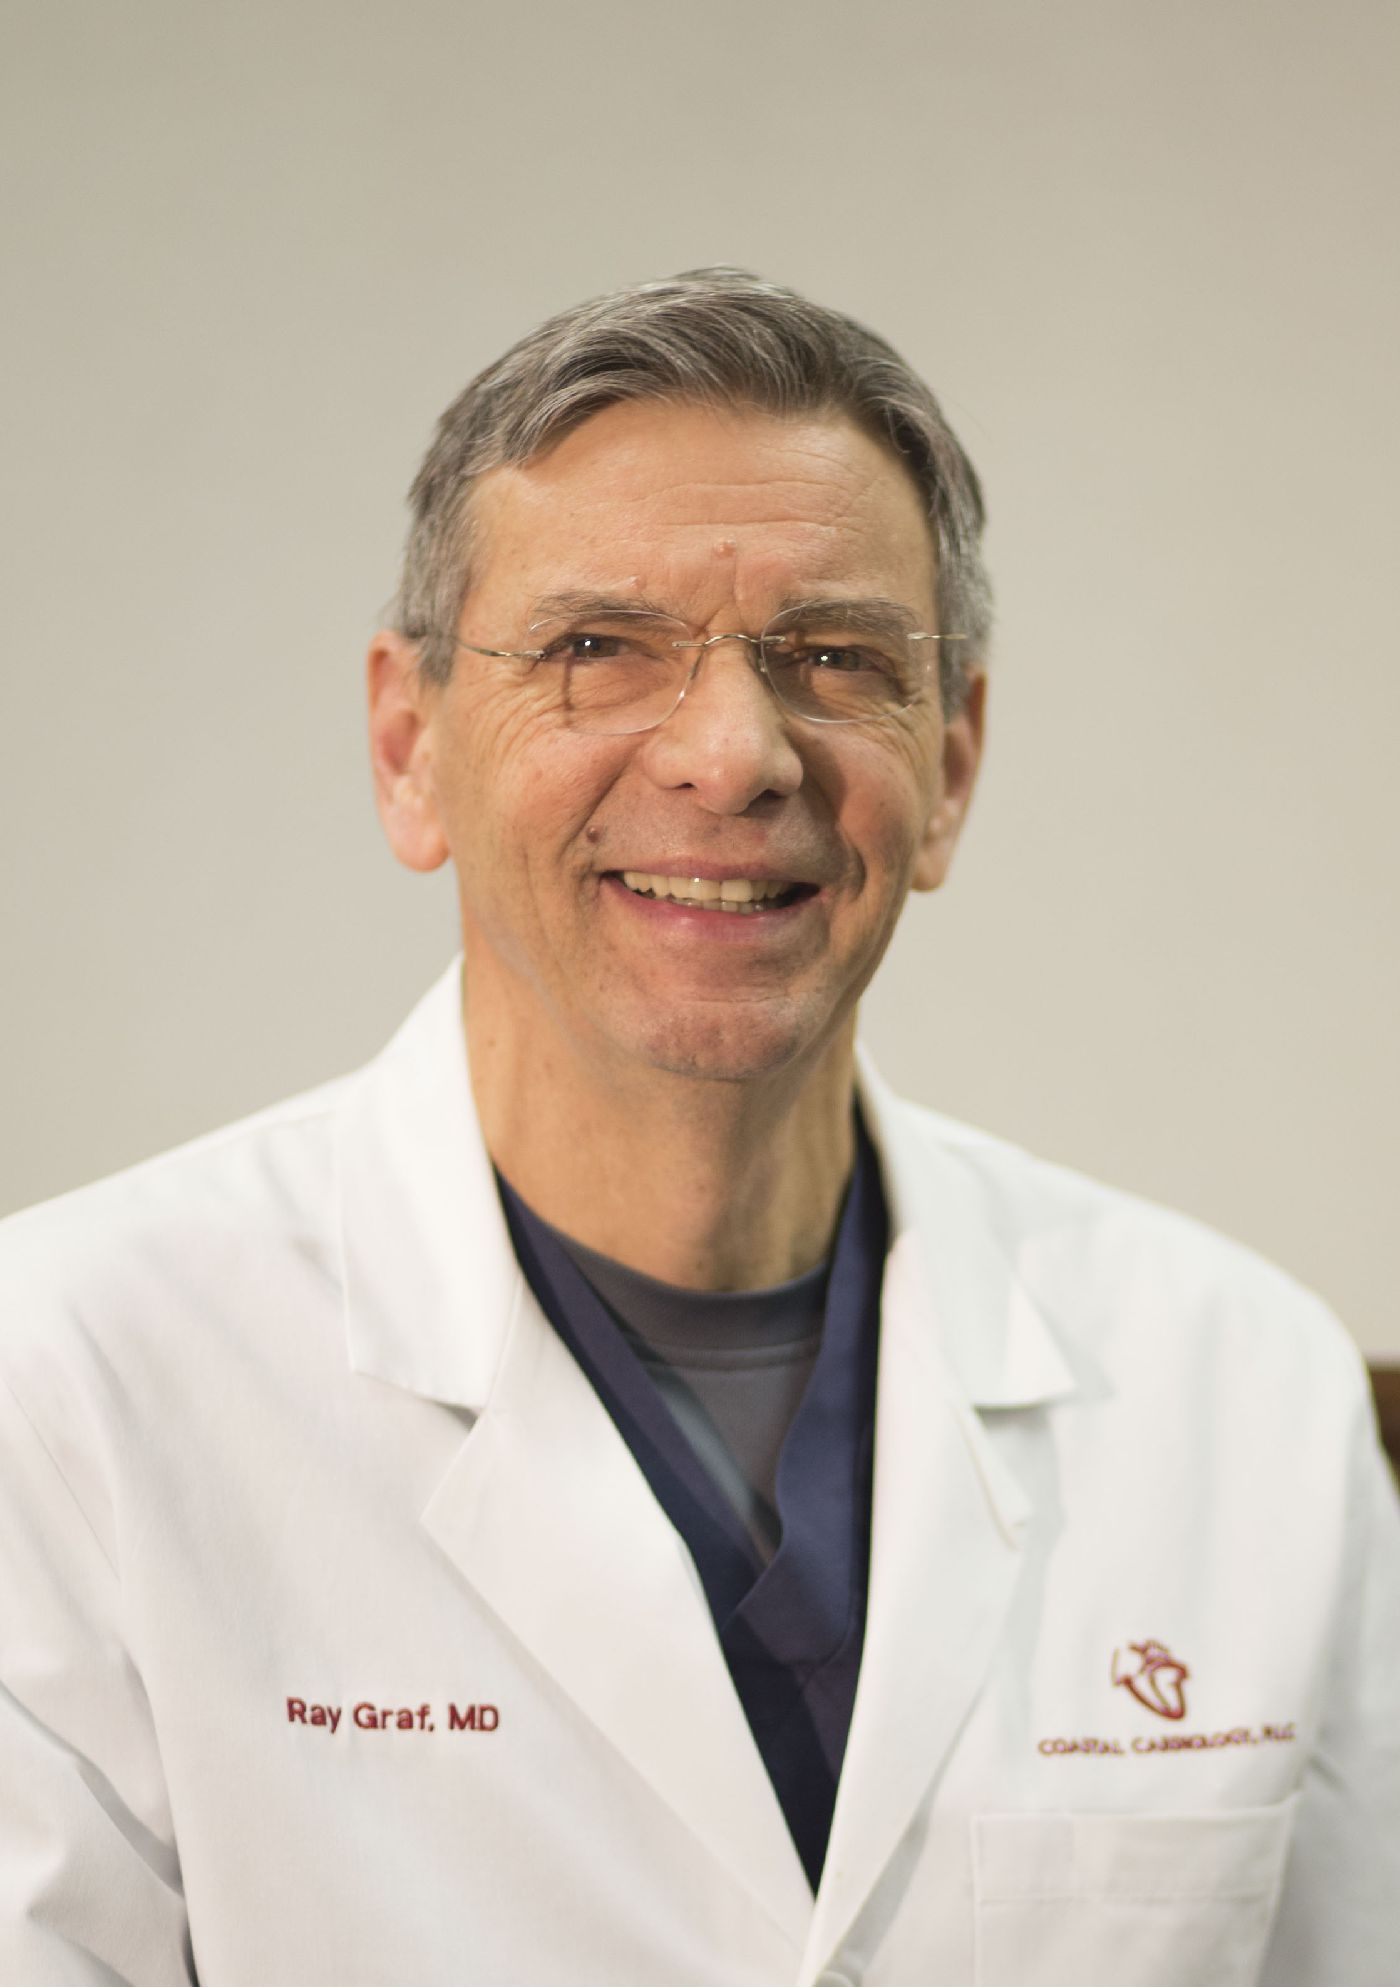 Dr. Graf - Cardiologist at Coastal Cardiology Association